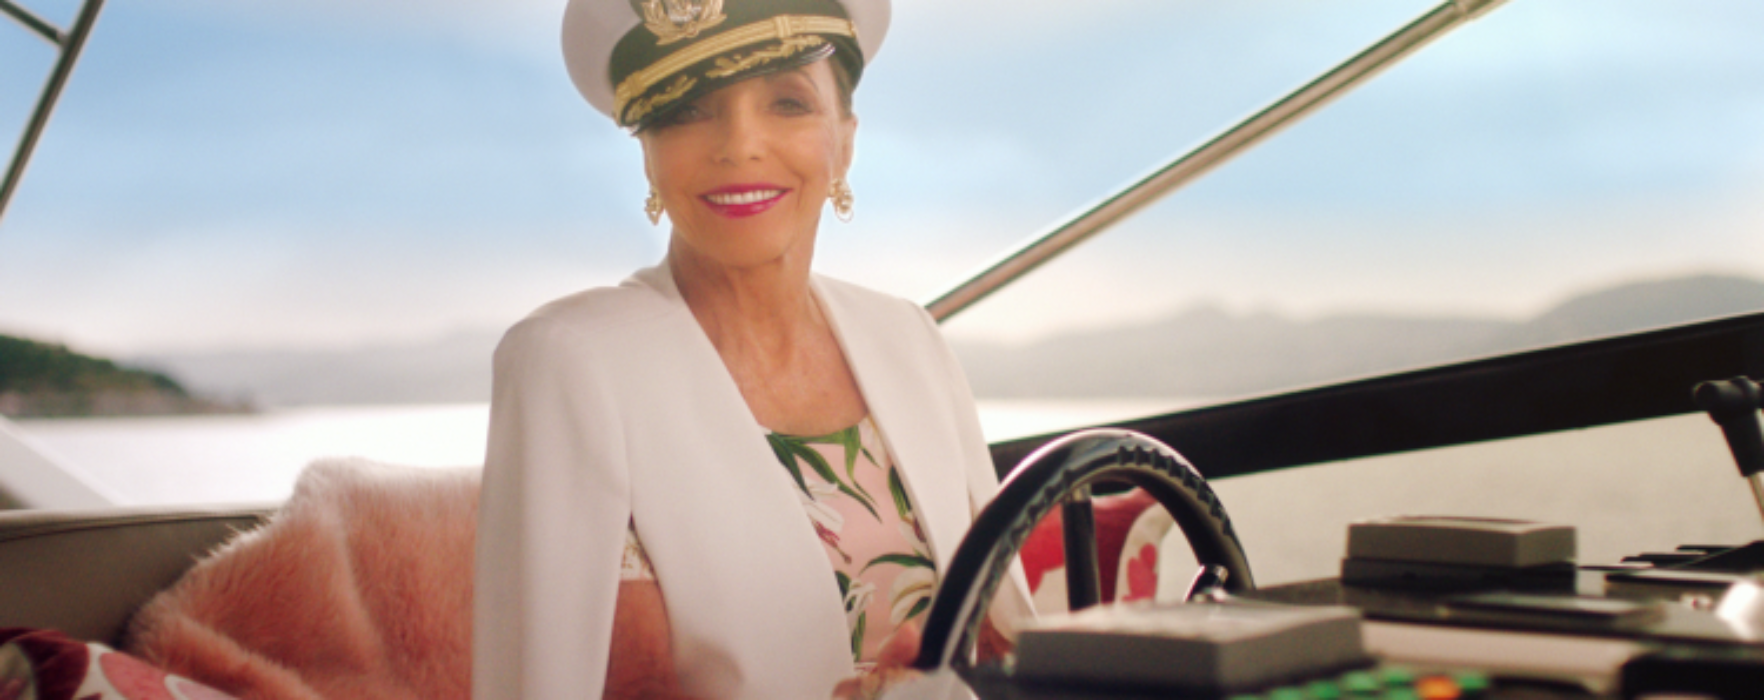 Joan Collins is back on screen urging people to end unsatisfactory relationships